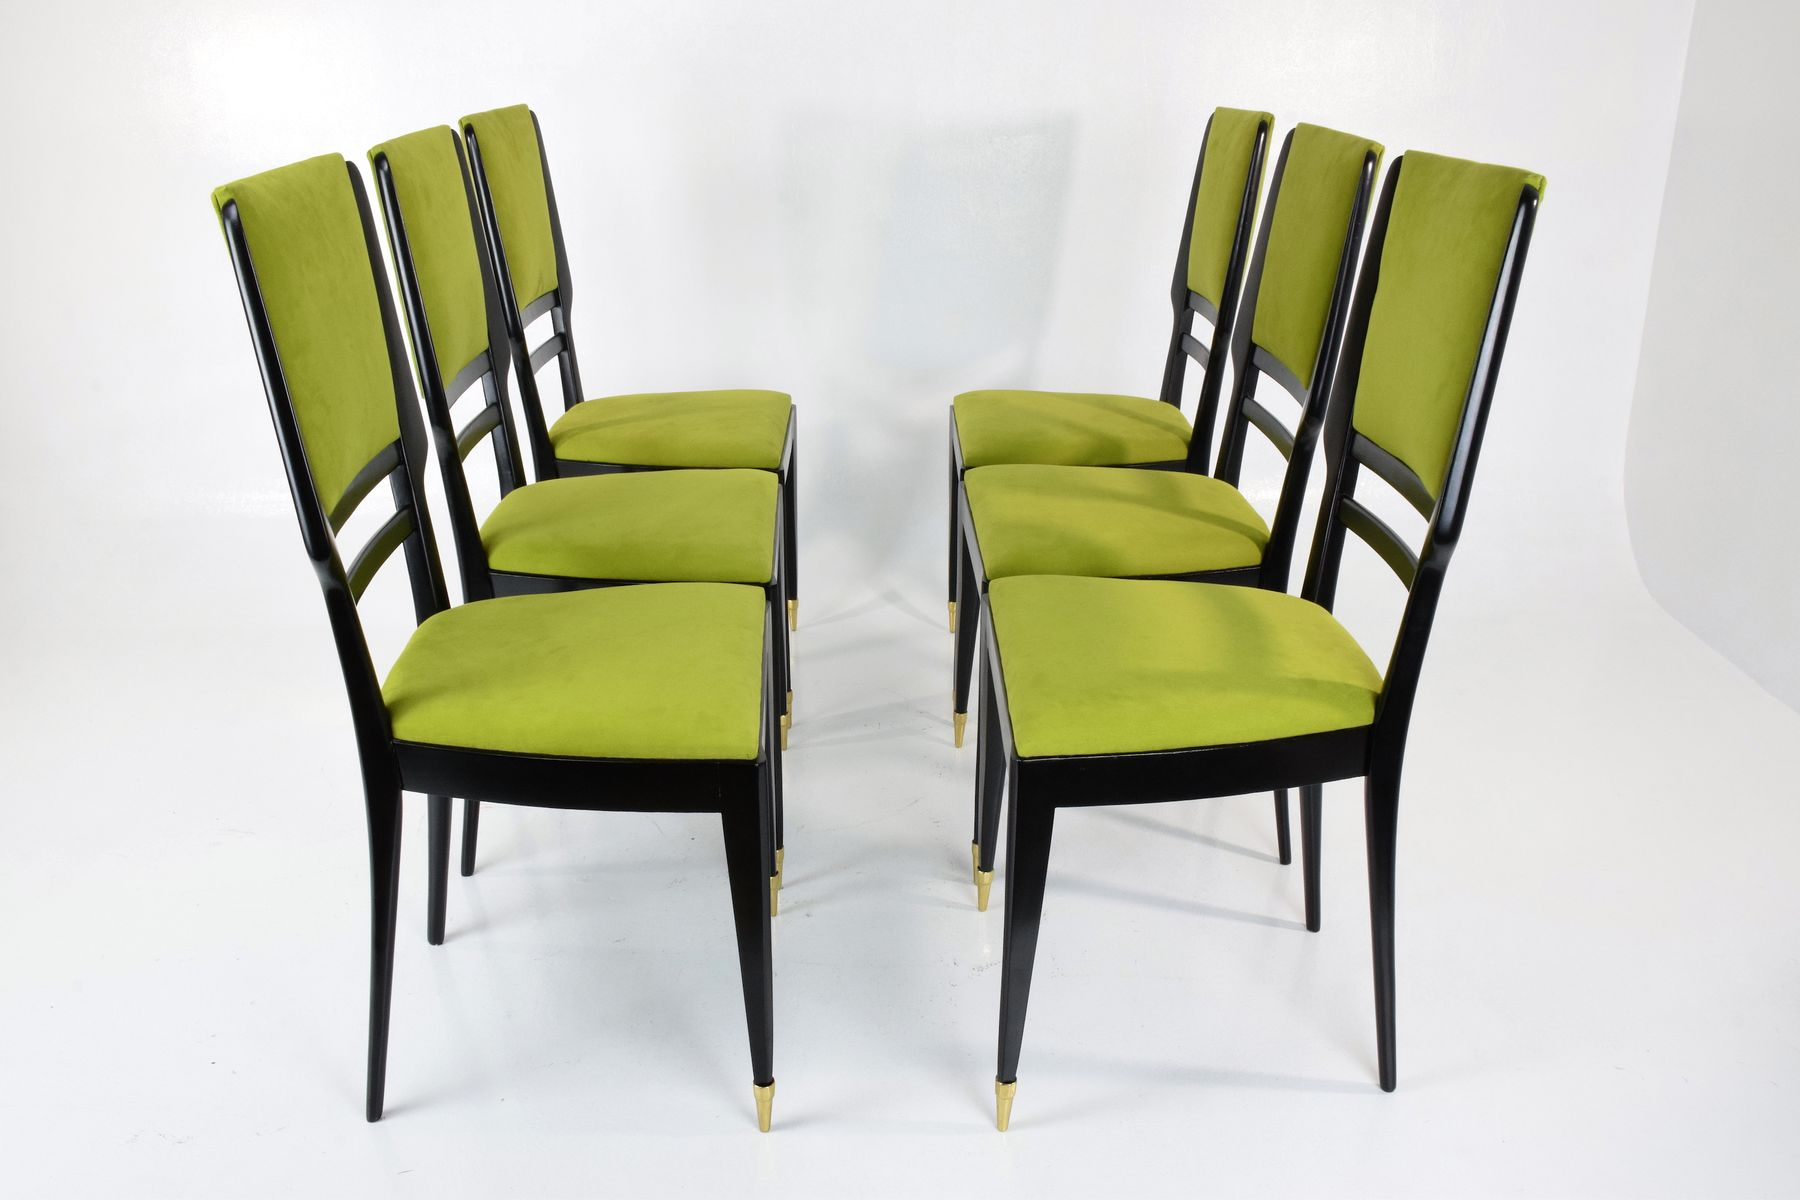 Dining Chairs Set Of 6 Italian Dining Chairs 1950s Set Of 6 For Sale At Pamono